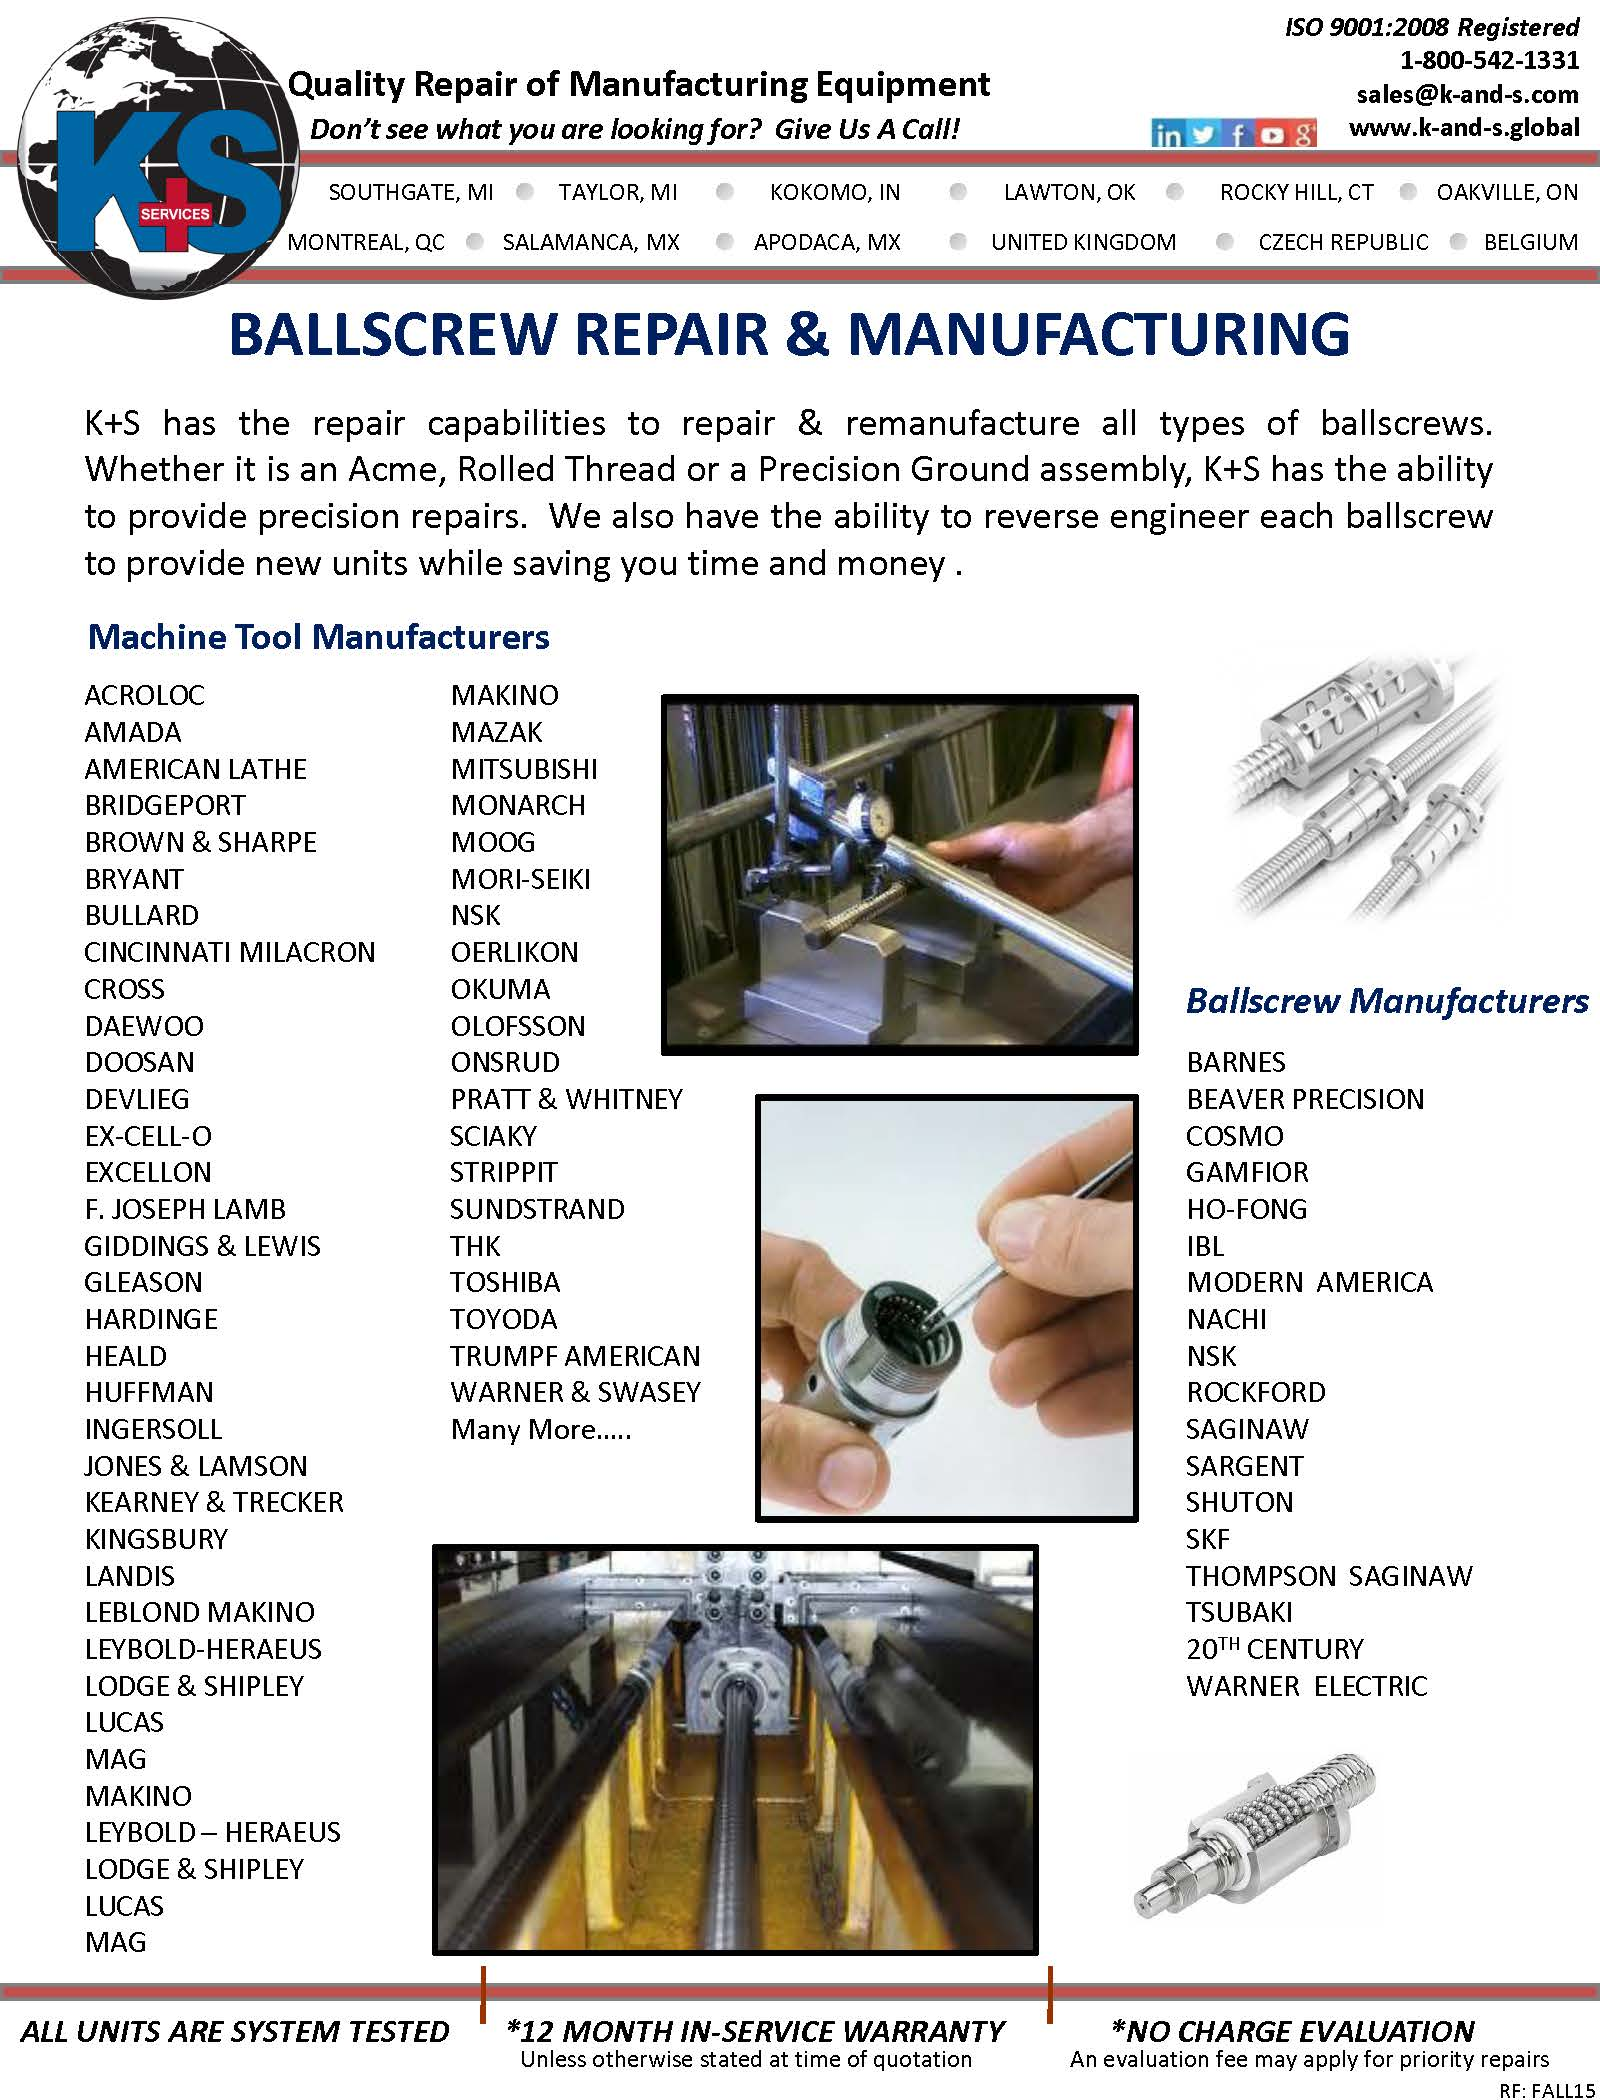 K S Services Inc Southgate Michigan Mi 48195 Electronics Repair Center We Specialize In Industrial Electronic Ballscrew And Manufacturing